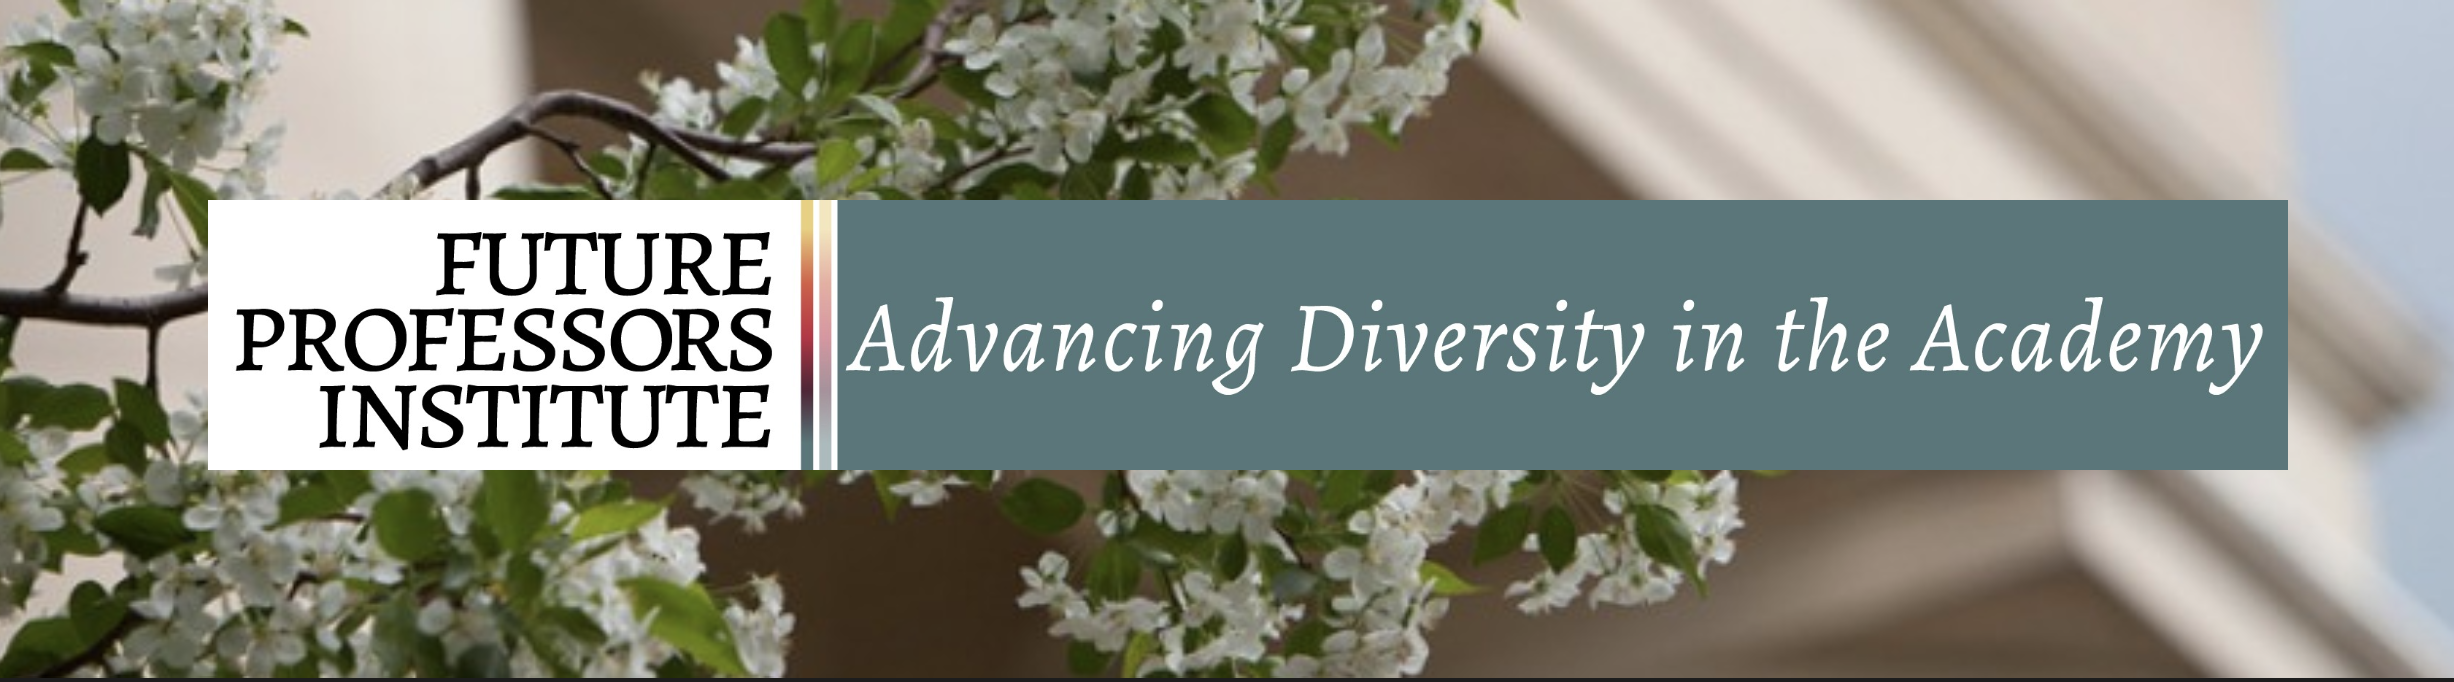 Future Professors Institute: Advancing Diversity in the Academy logo